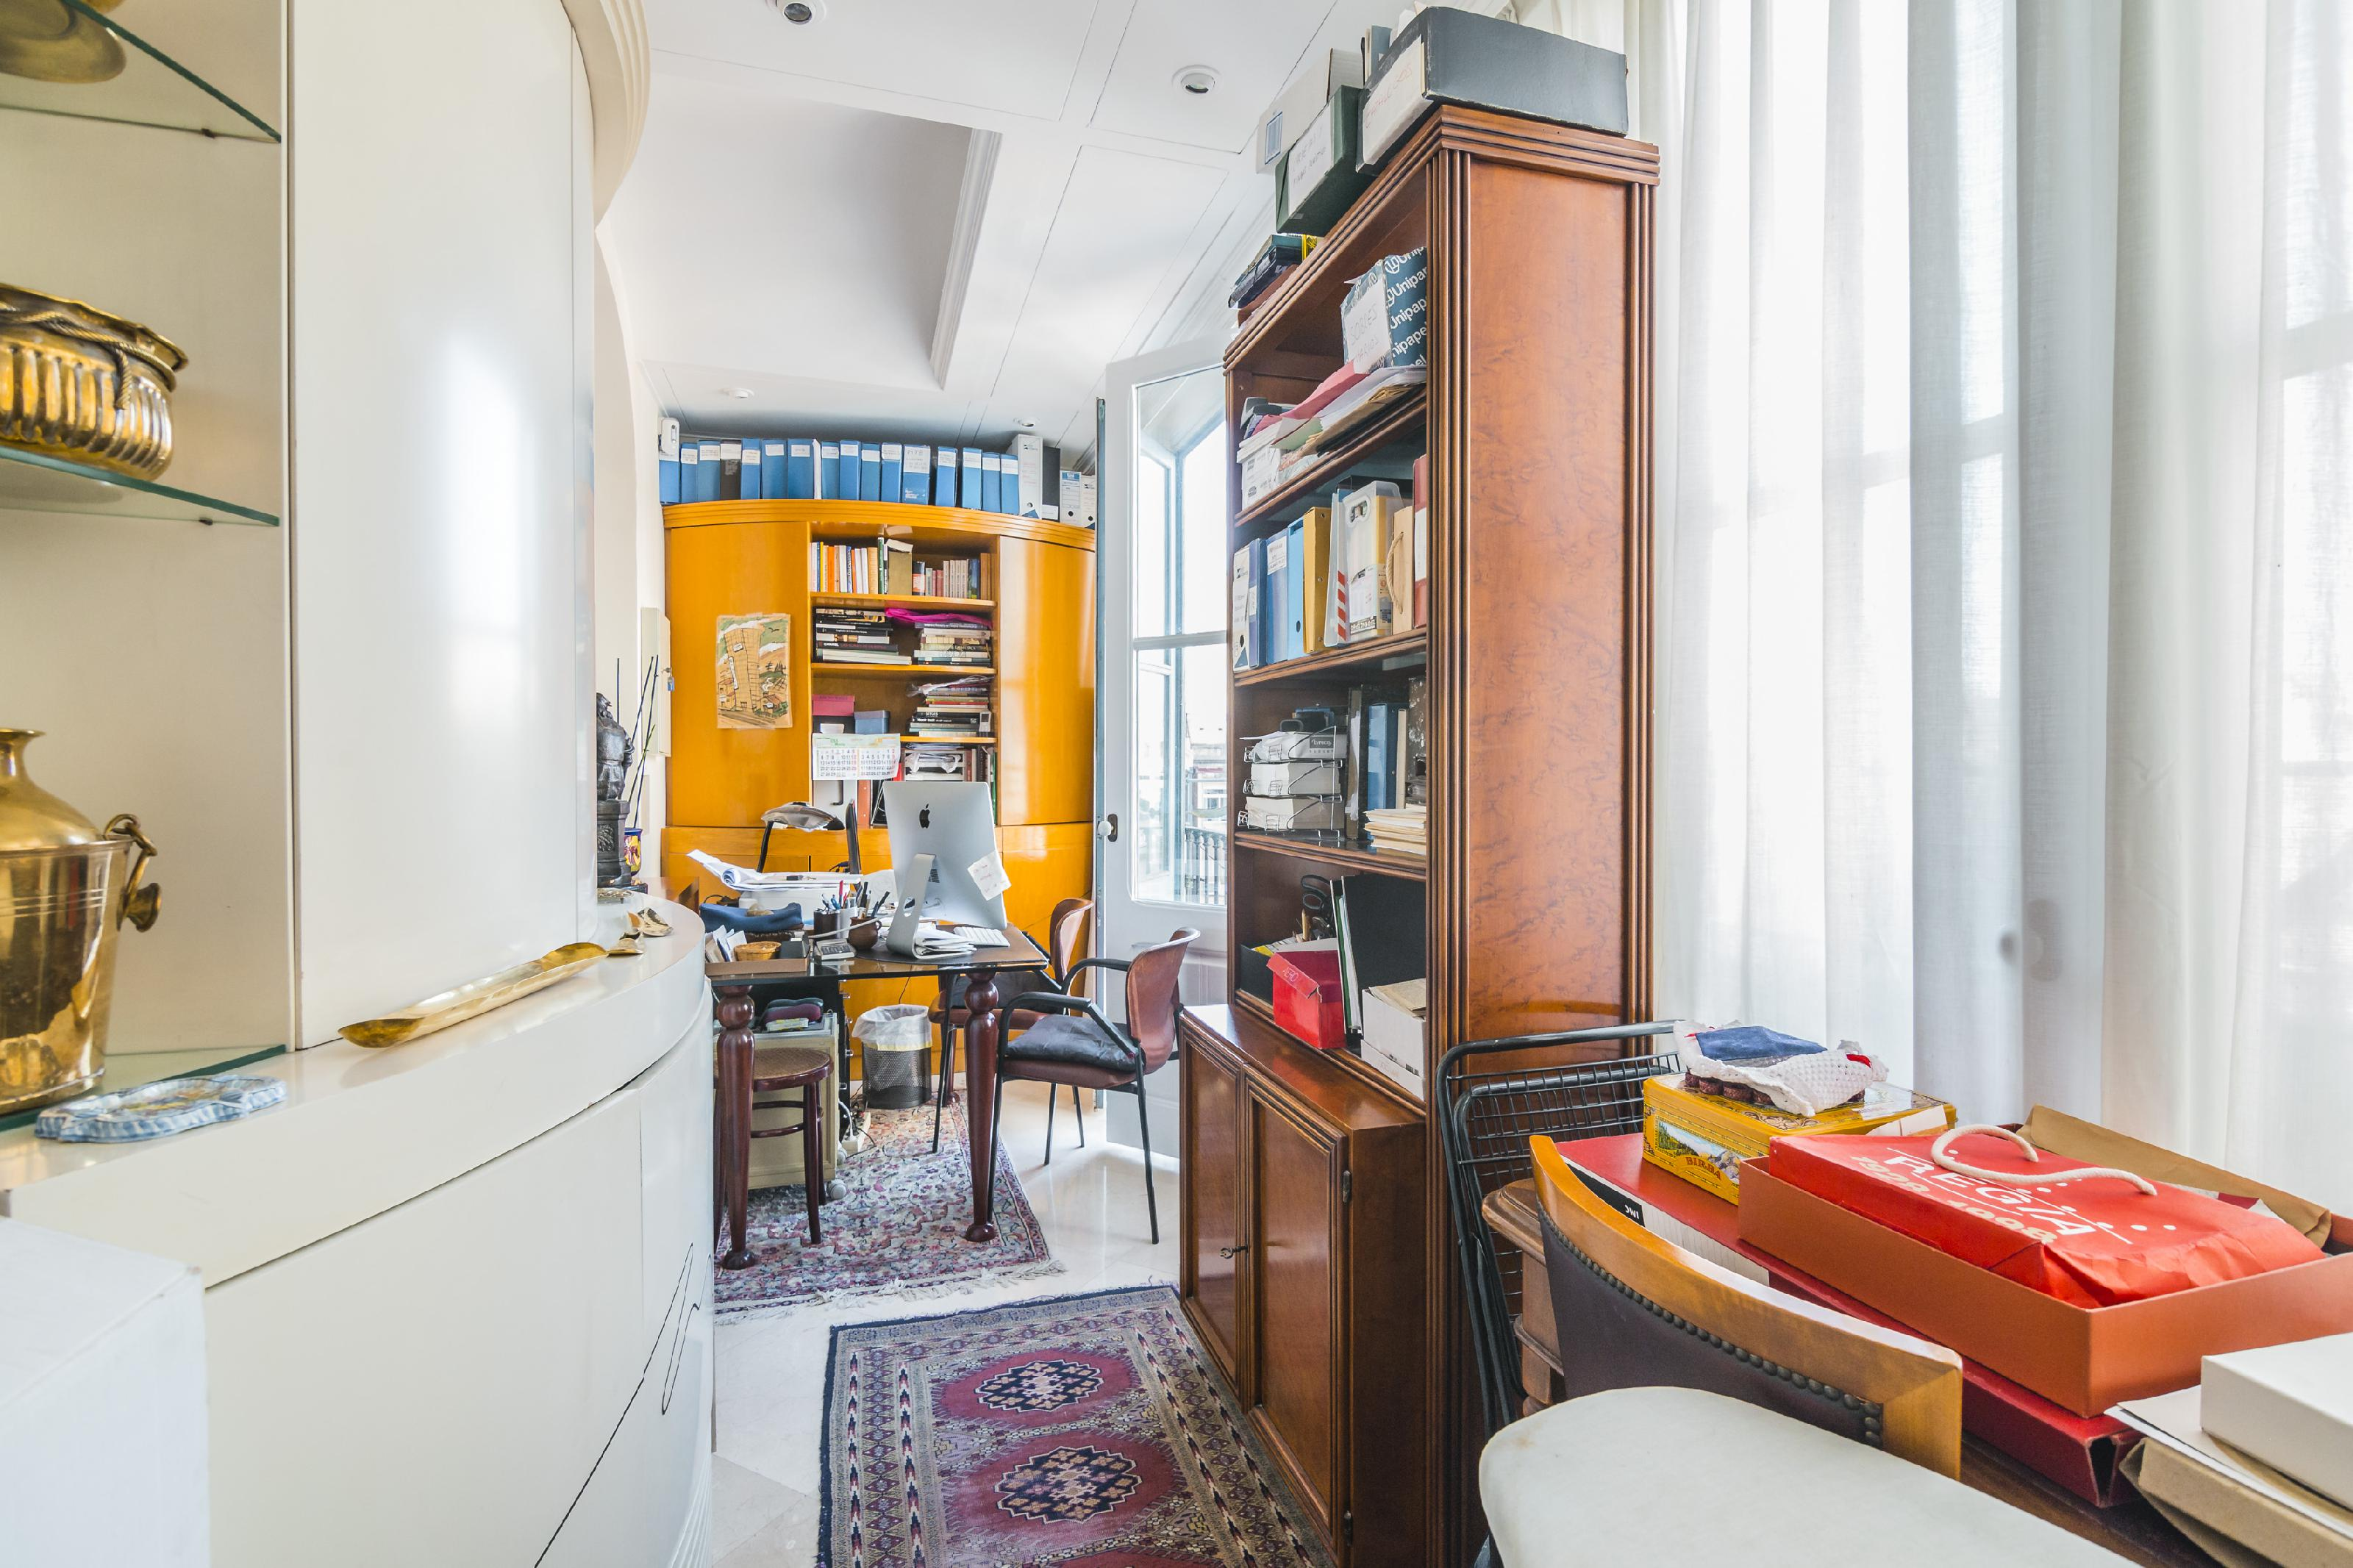 87800 Apartment for sale in Eixample, Dreta Eixample 20